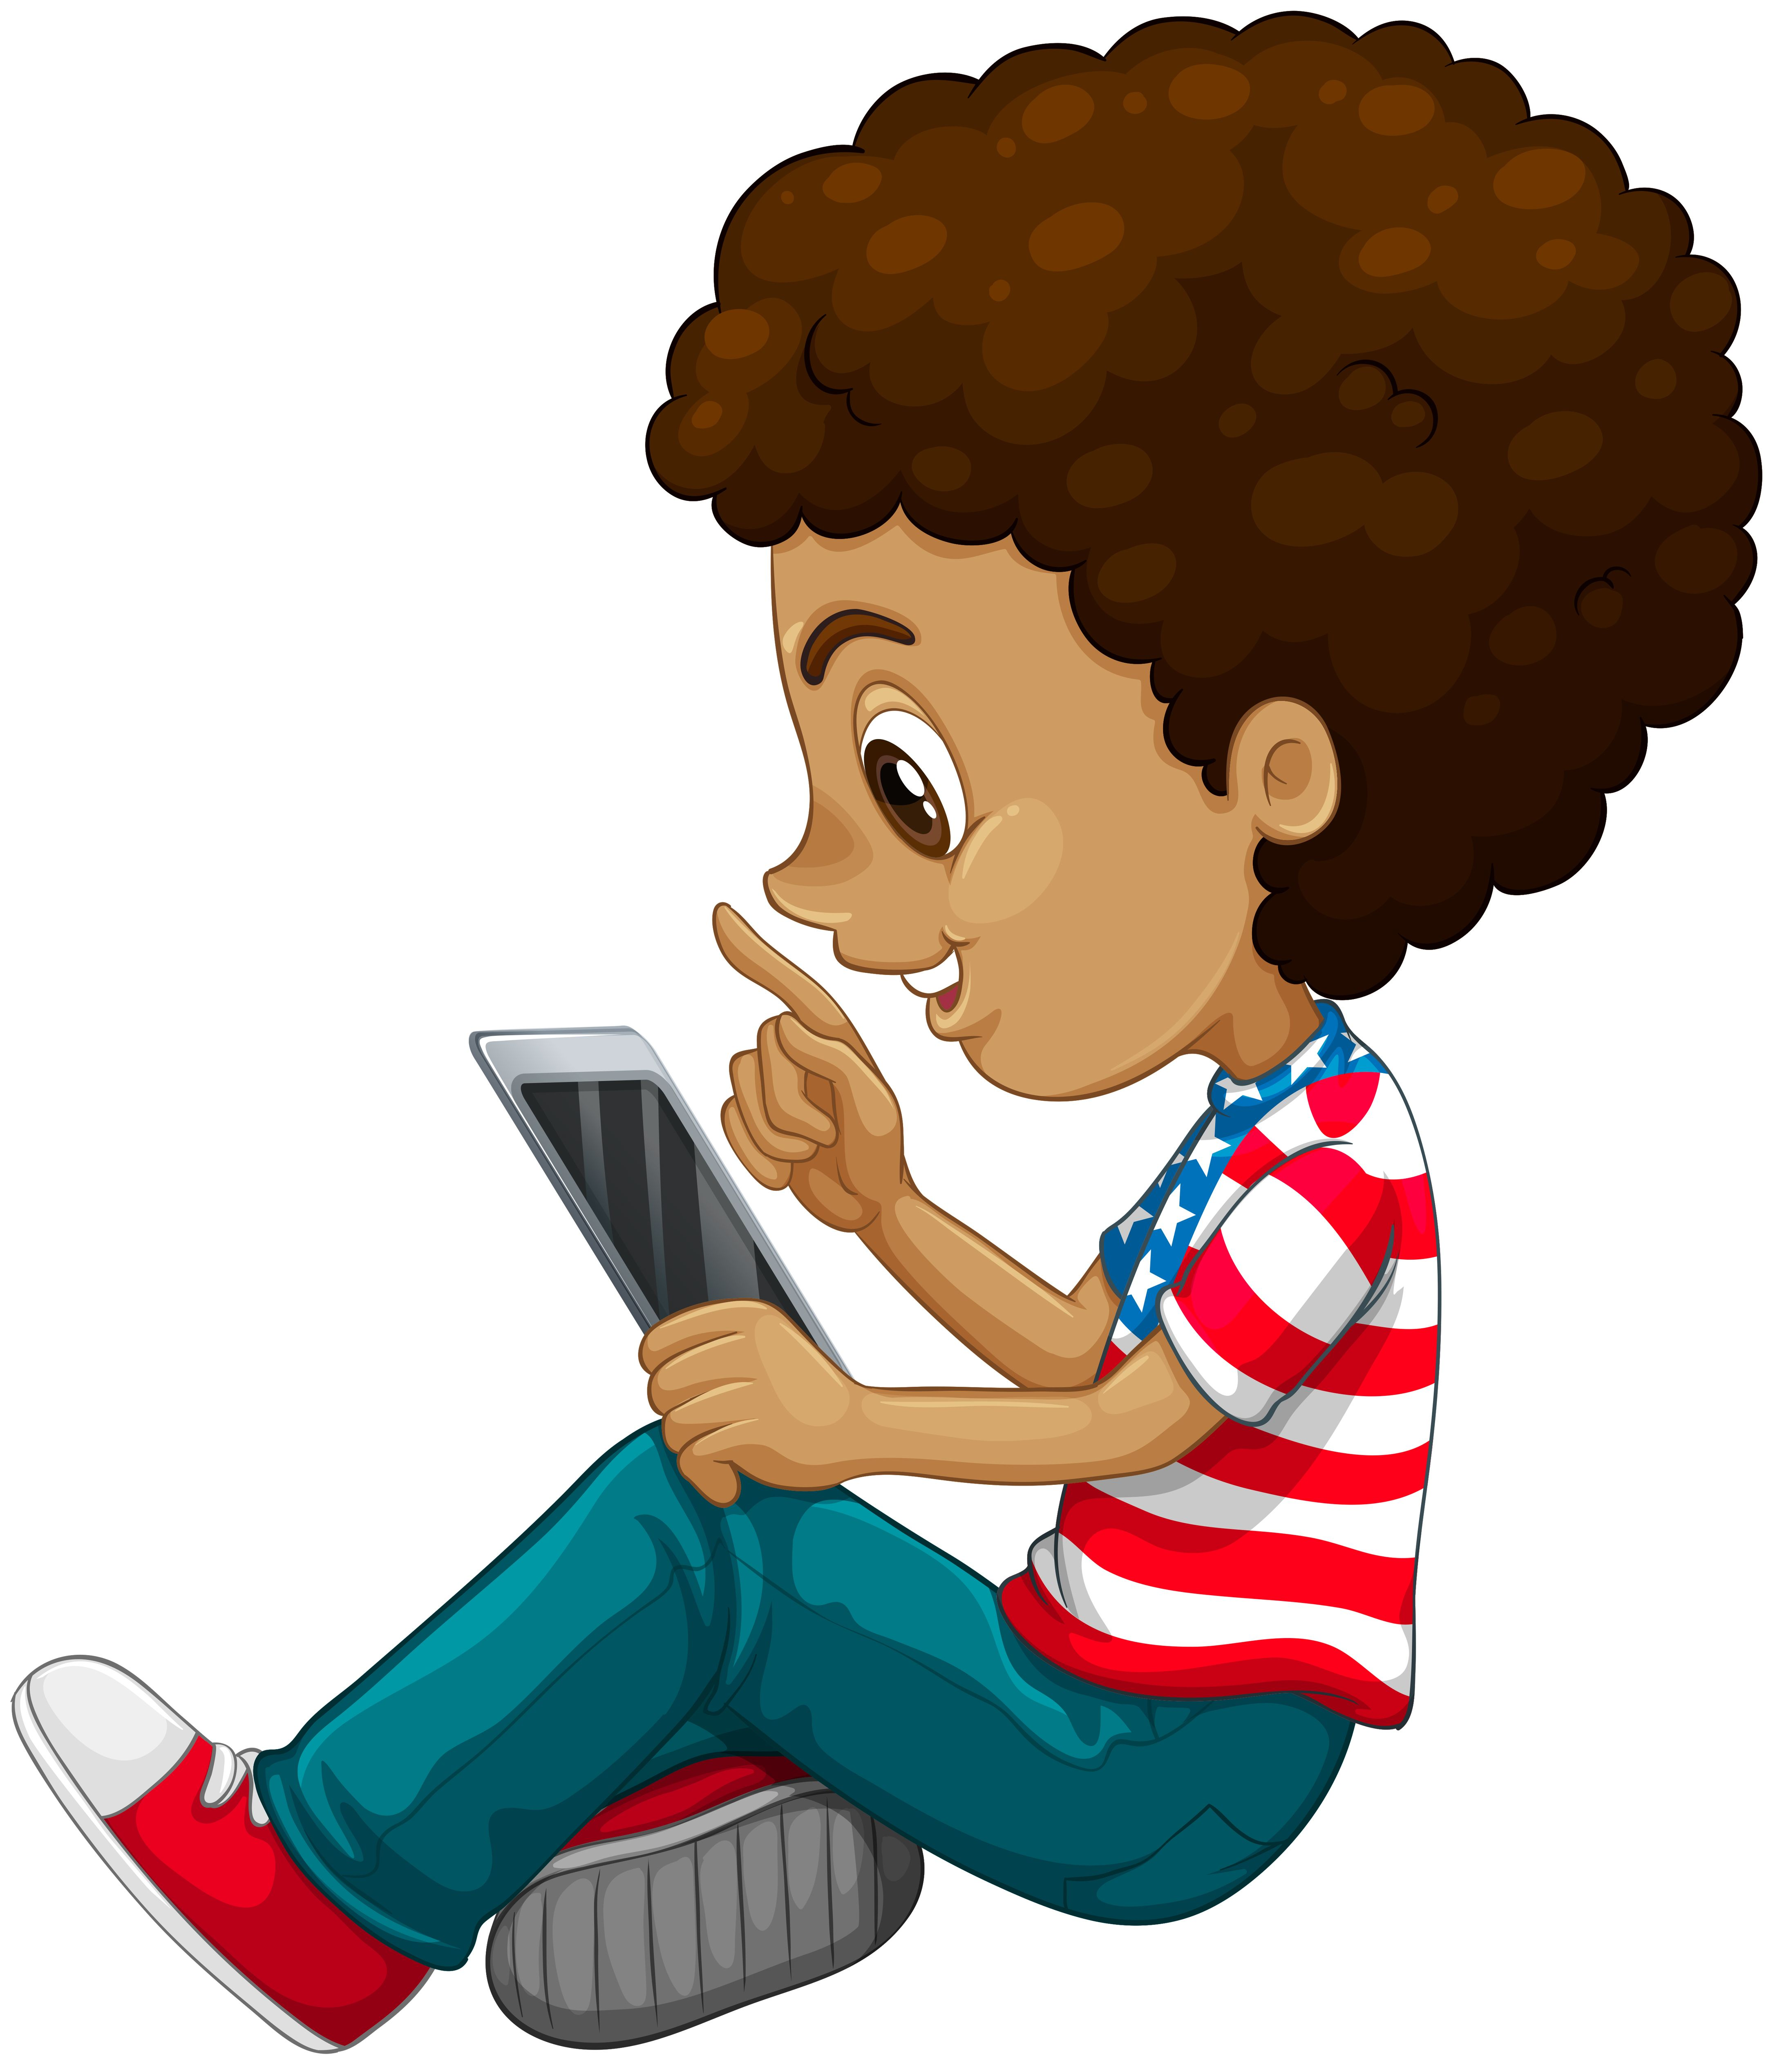 20+ No screen time clipart info